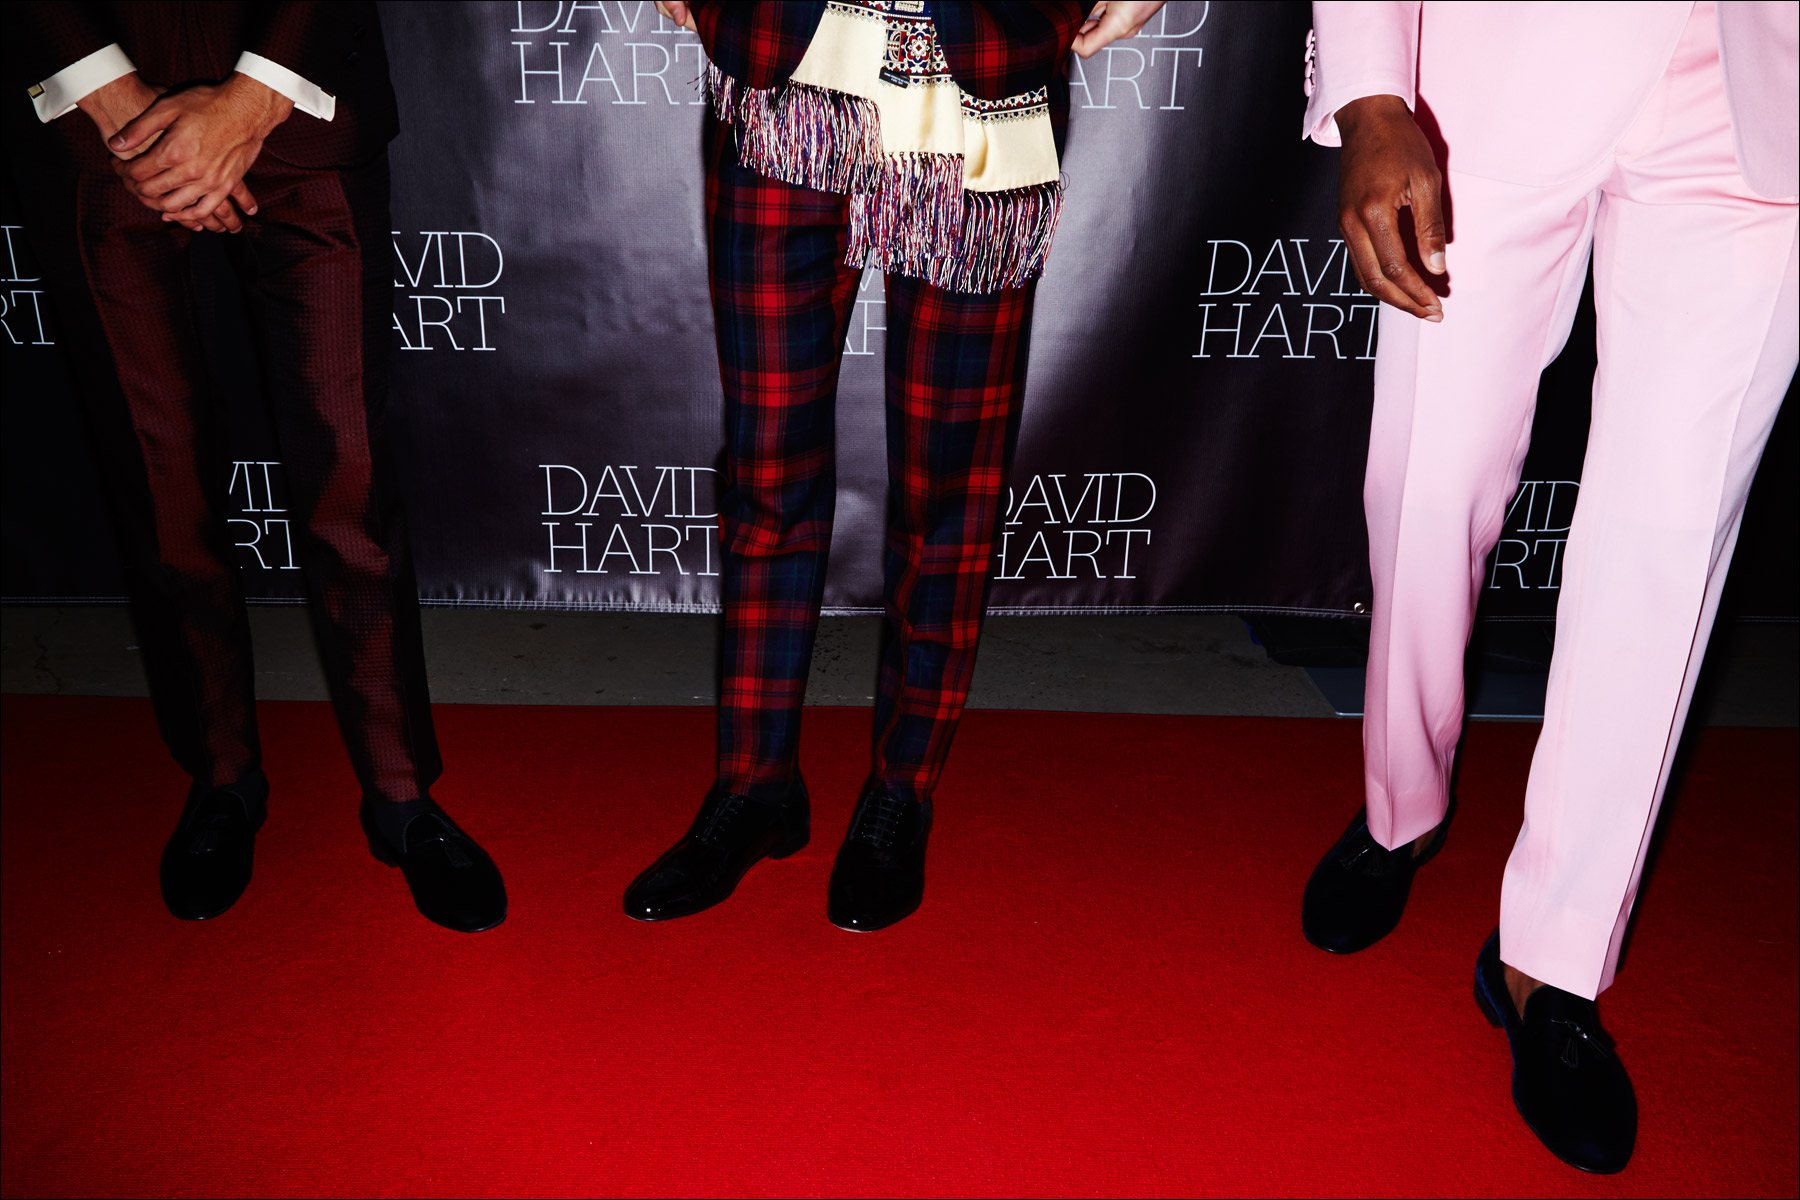 Models tuxedo pants photographed on the David Hart red carpet for Fall/Winter 2017. Photography by Alexander Thompson for Ponyboy magazine NY.